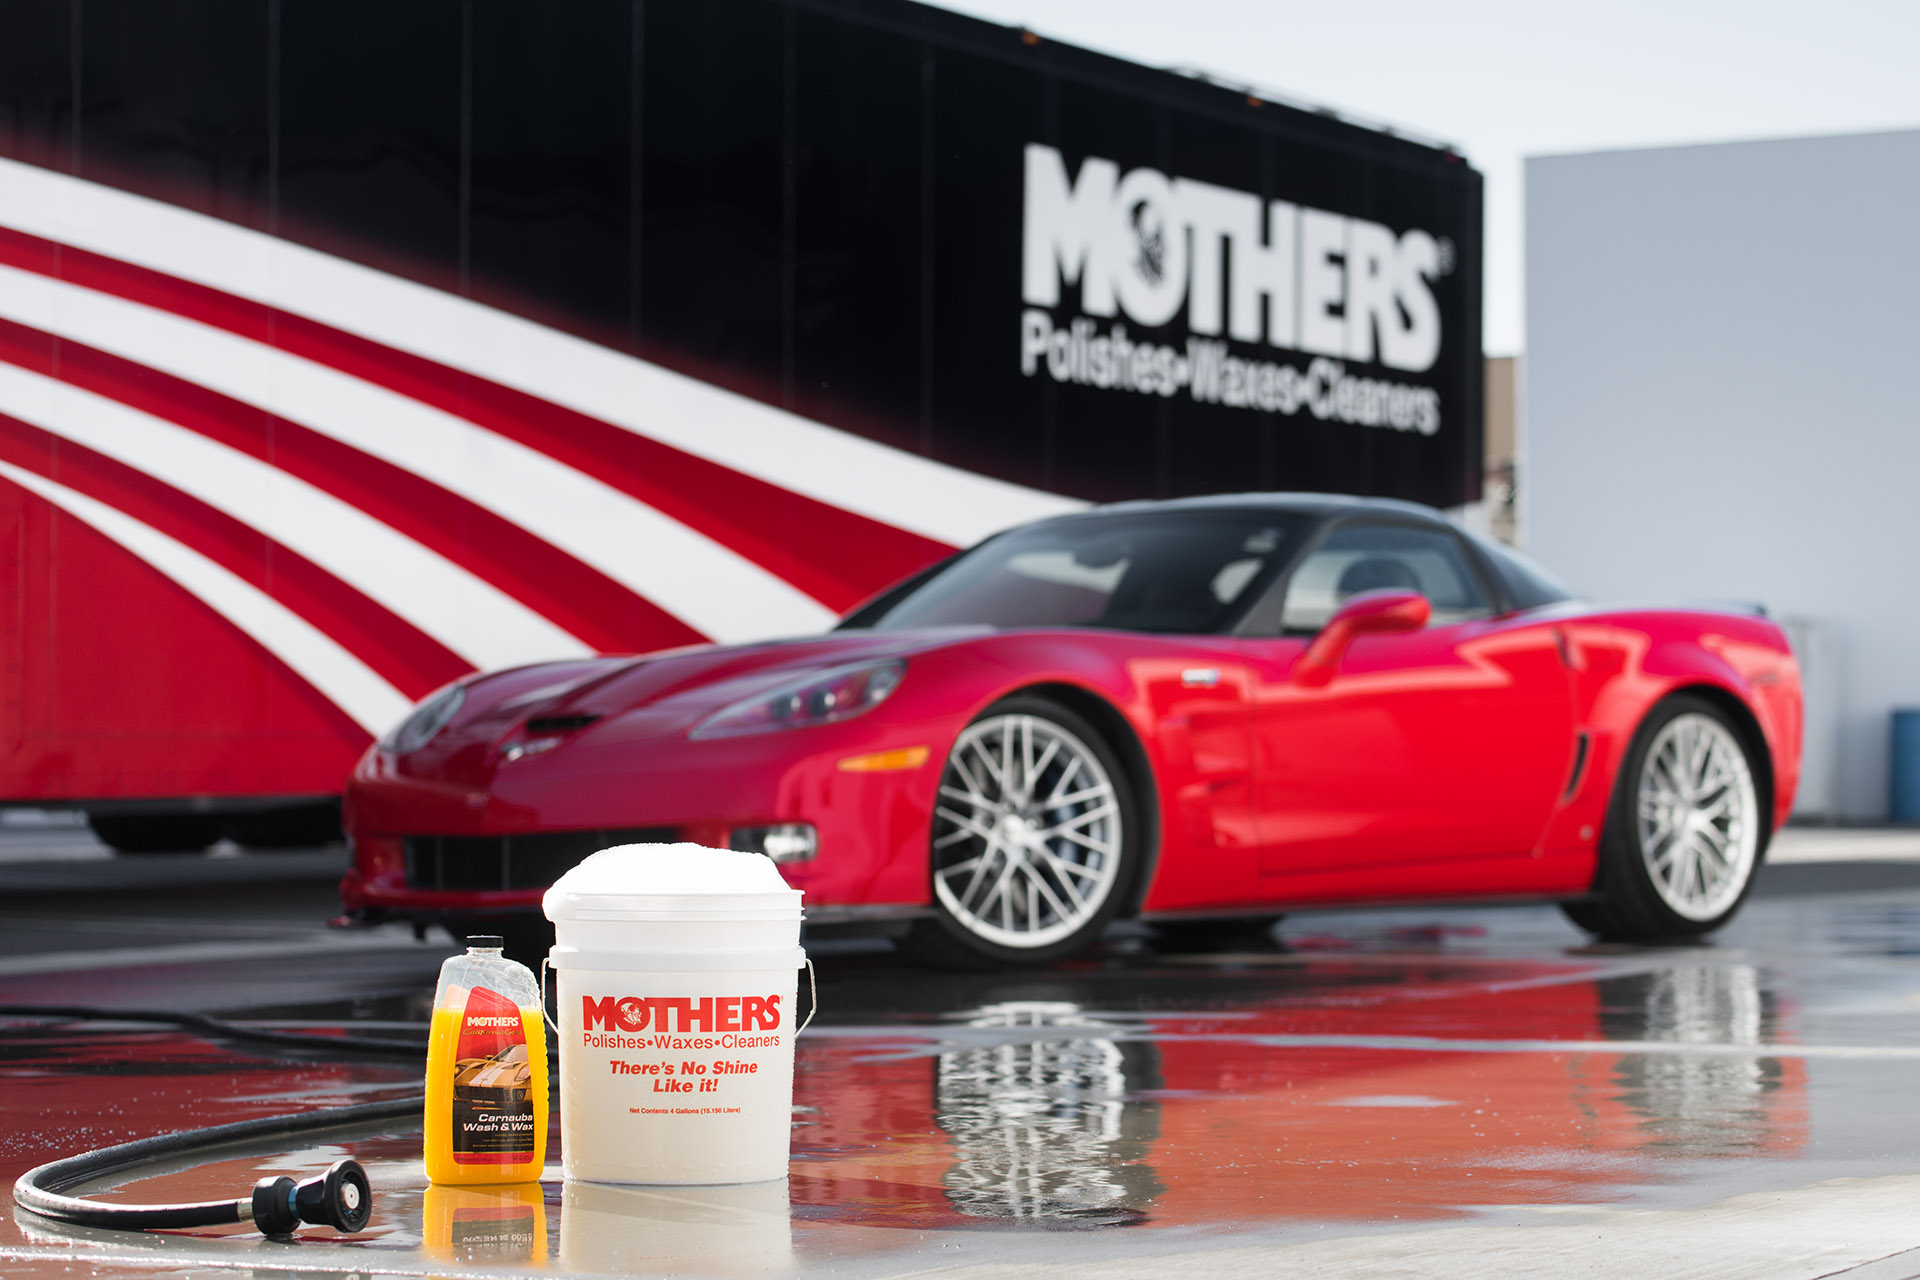 Luke Munnell automotive photography Mother's Detail Guide Chevy Corvette with Mother's car wash bucket and hose